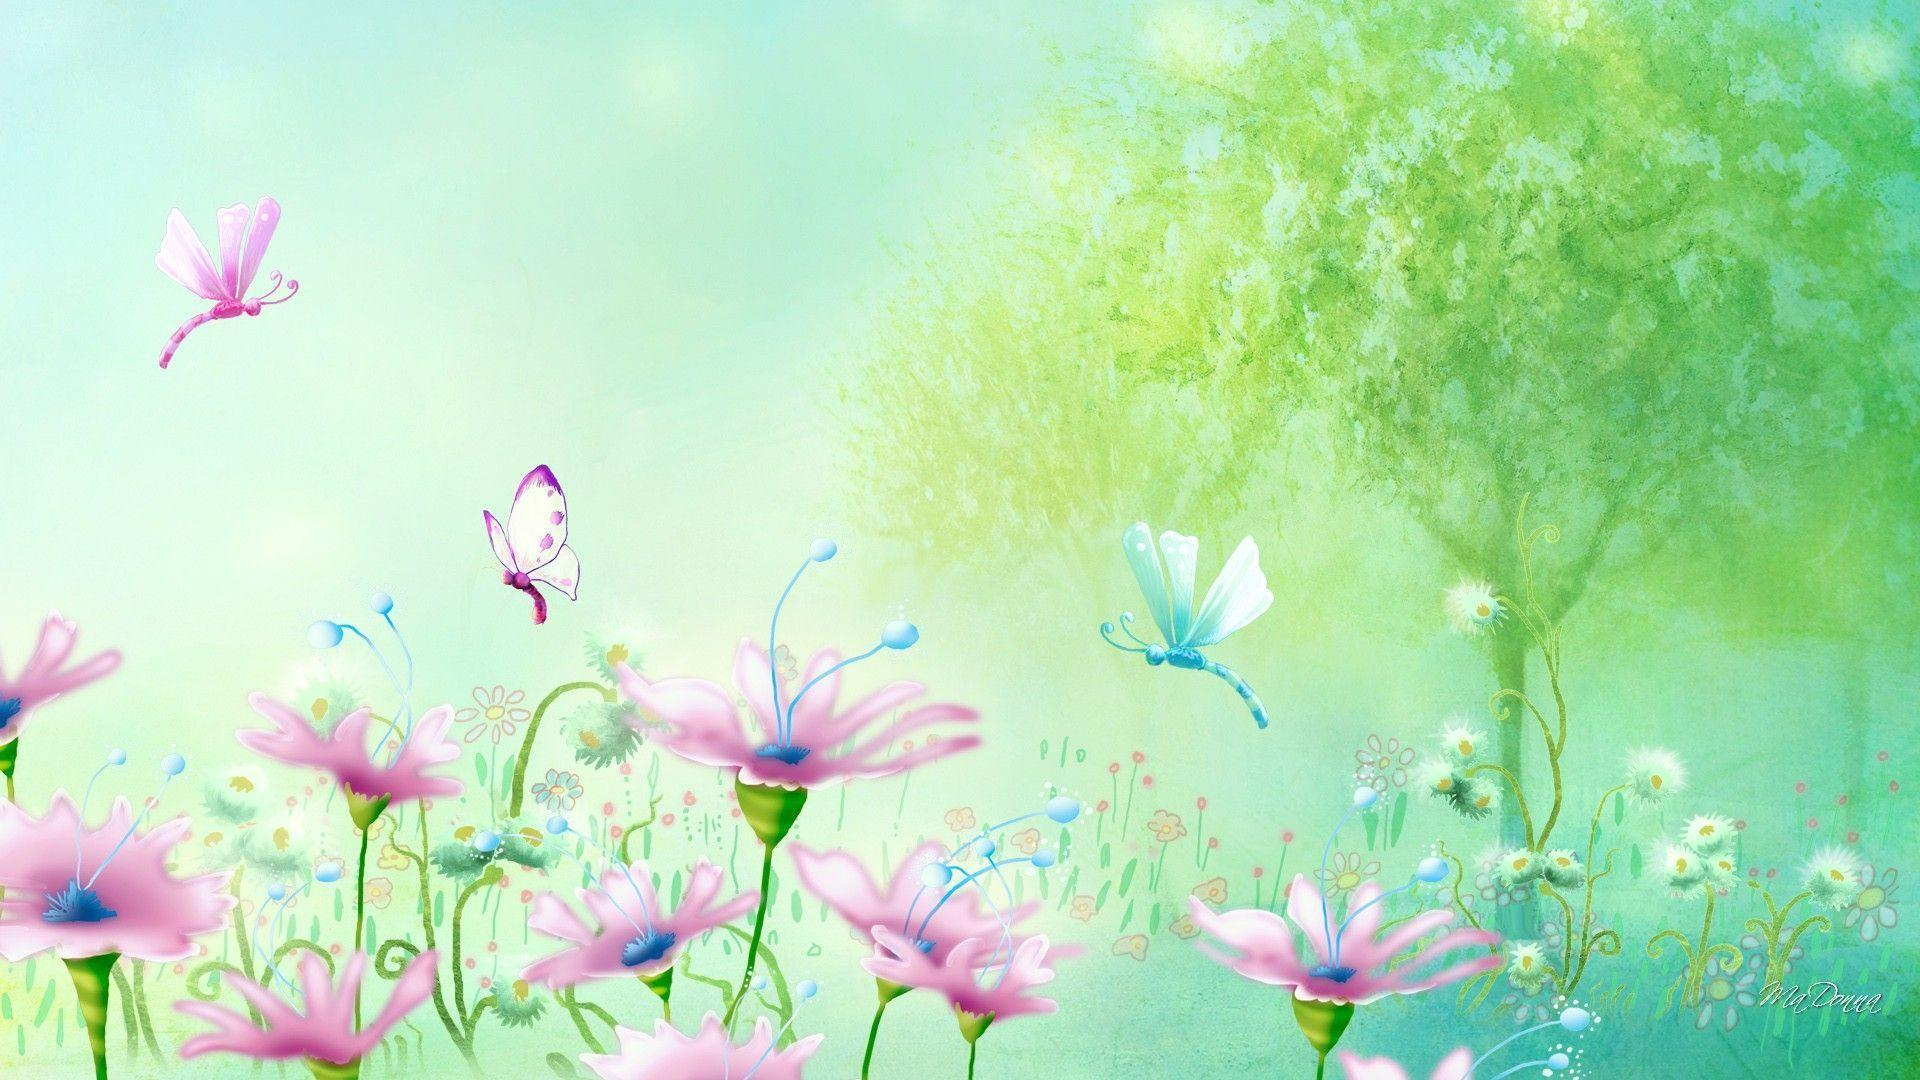 Springtime backgrounds pictures wallpaper cave - Backgrounds springtime ...